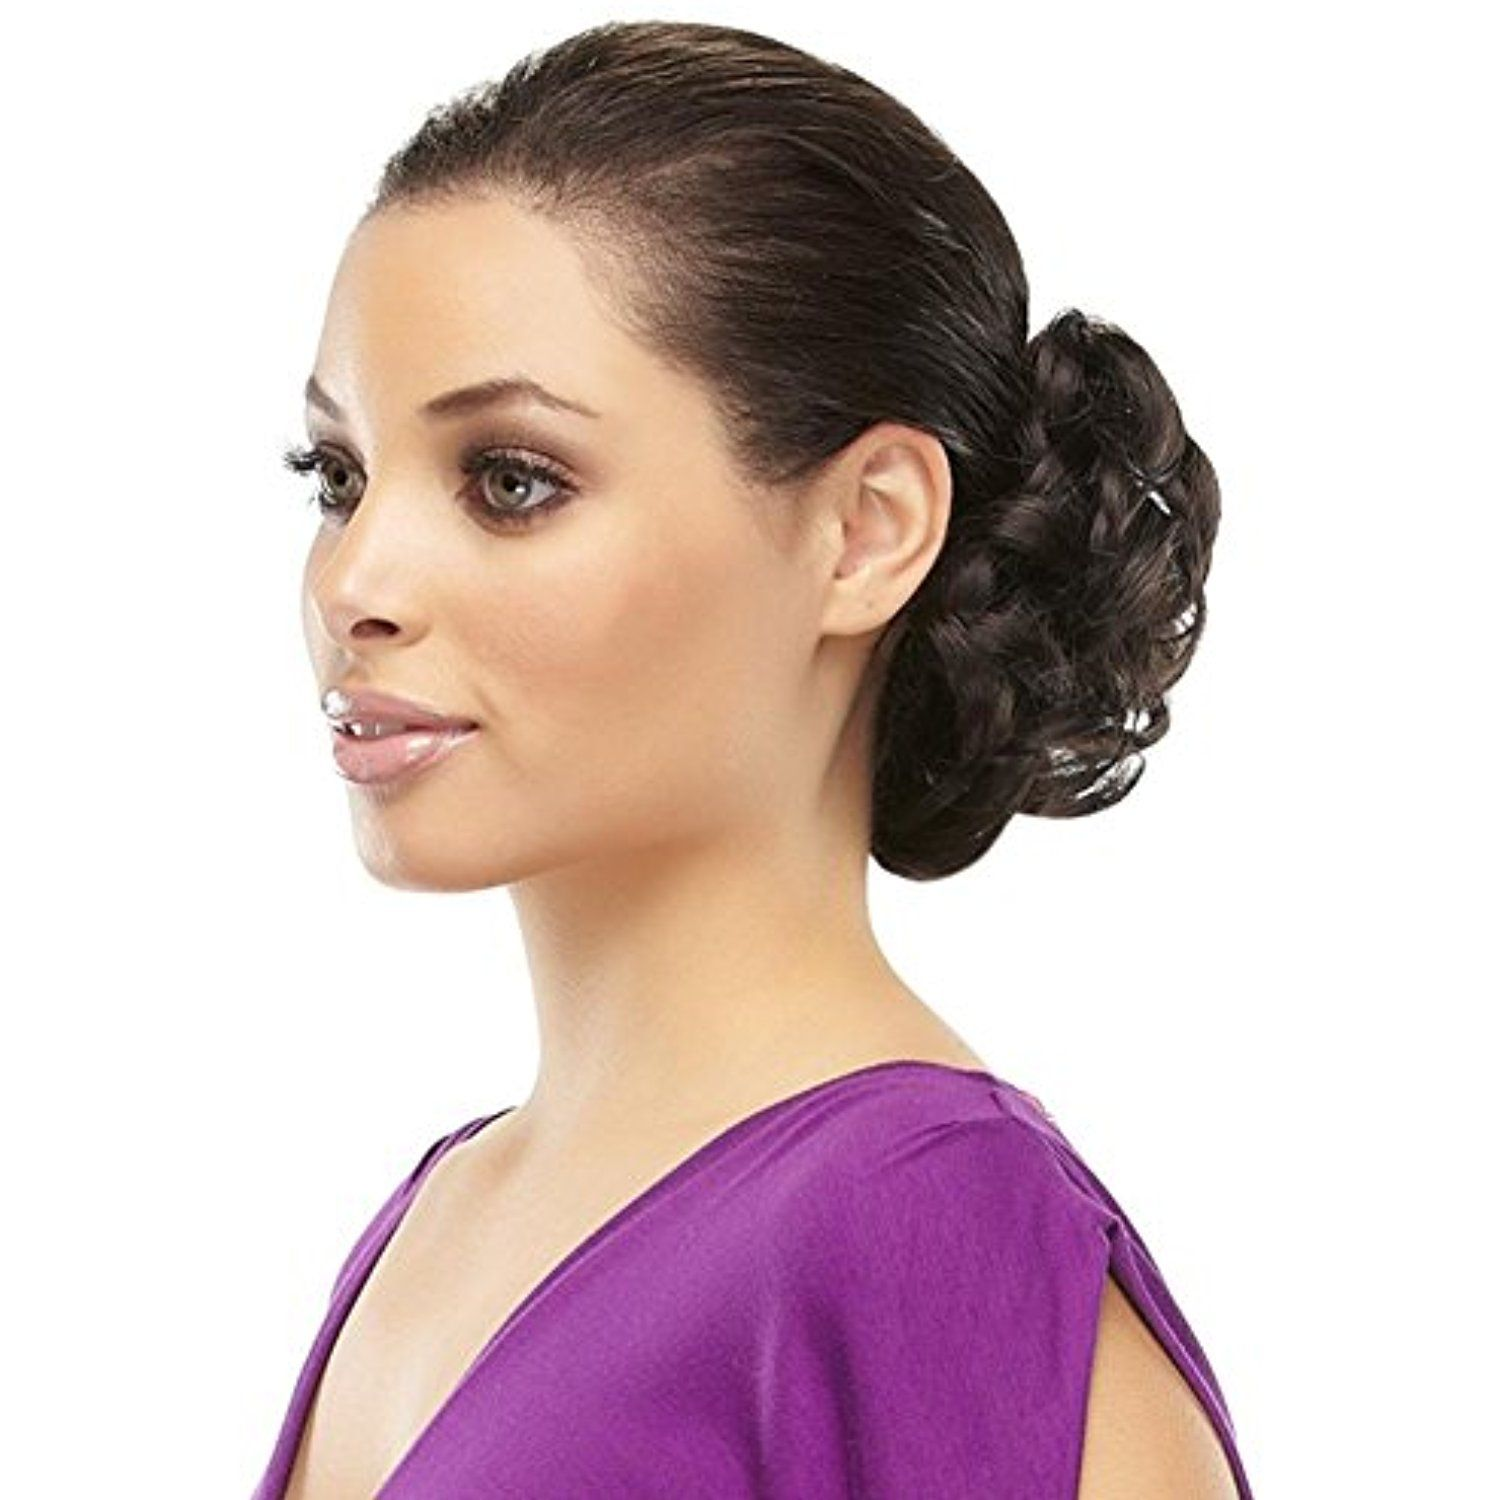 Funbun Curly Synthetic Hair Wrap Elastic Band Women s Hairpiece